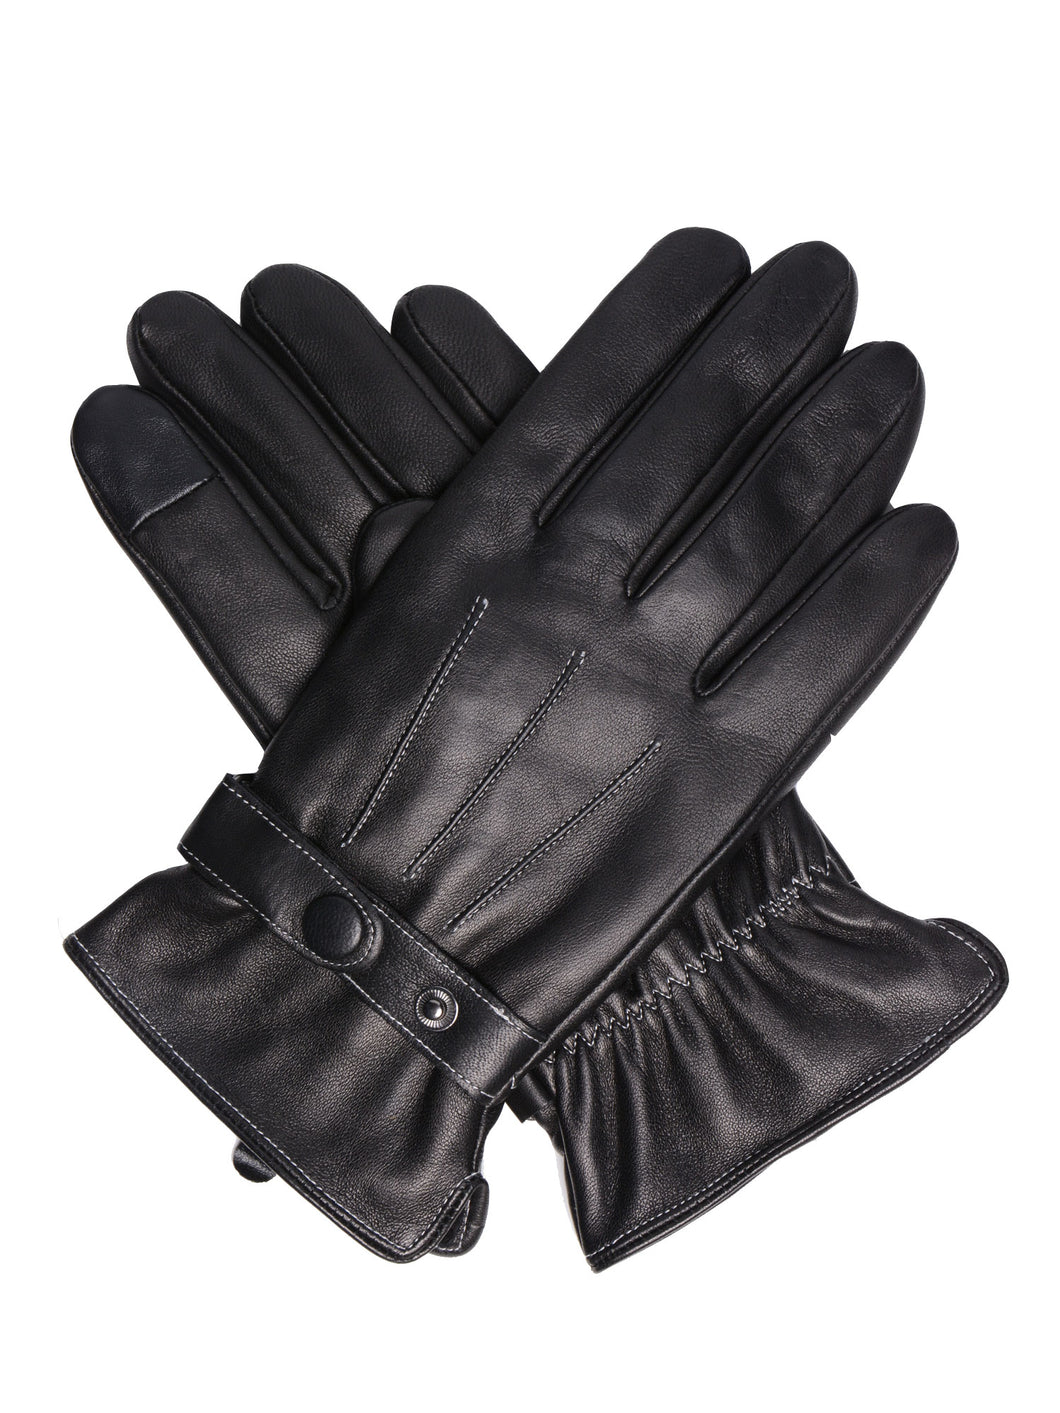 Roberto Men's Leather Driving Gloves